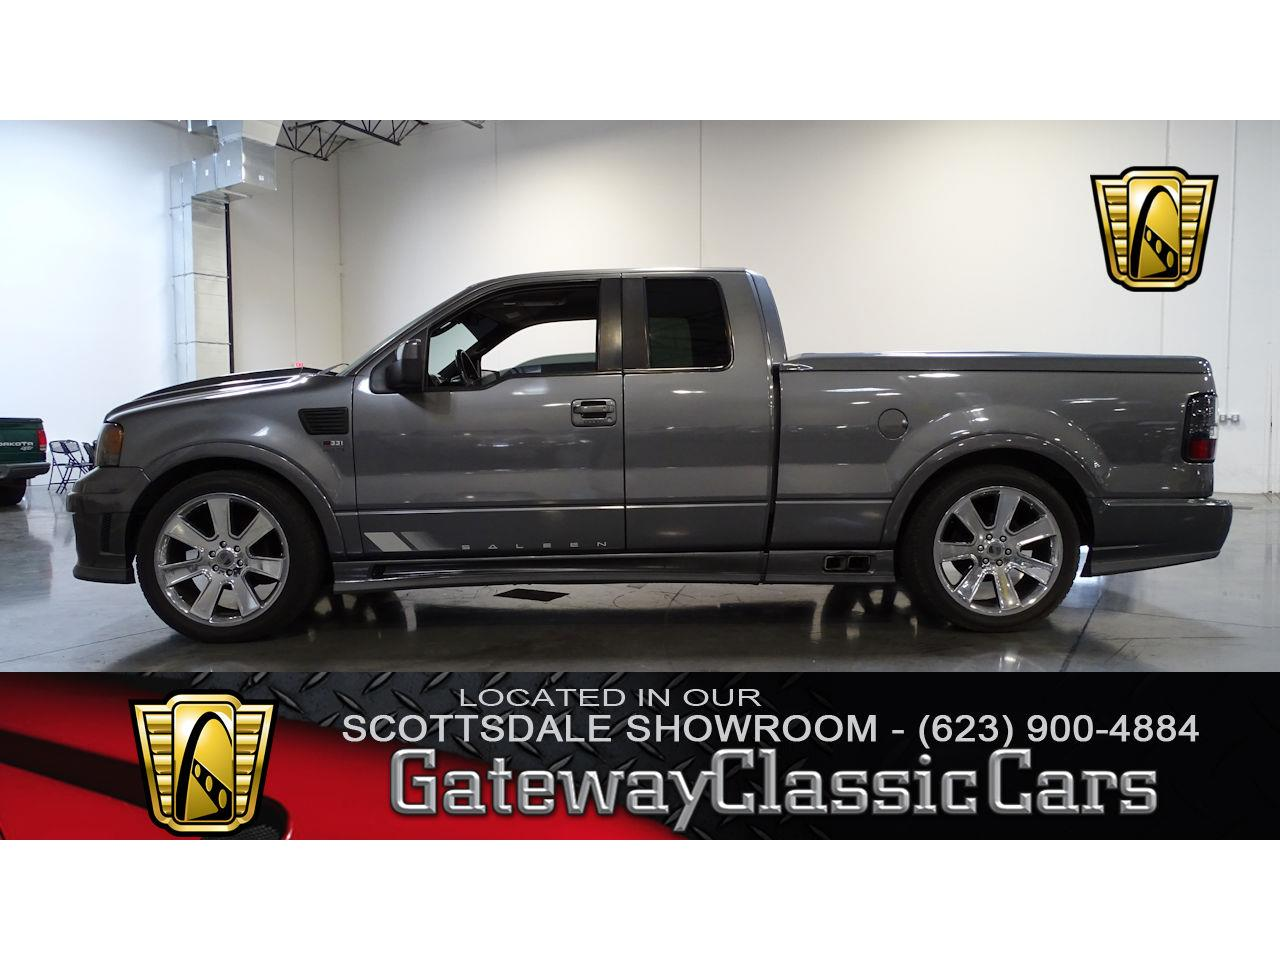 Large picture of 07 f150 nt9l